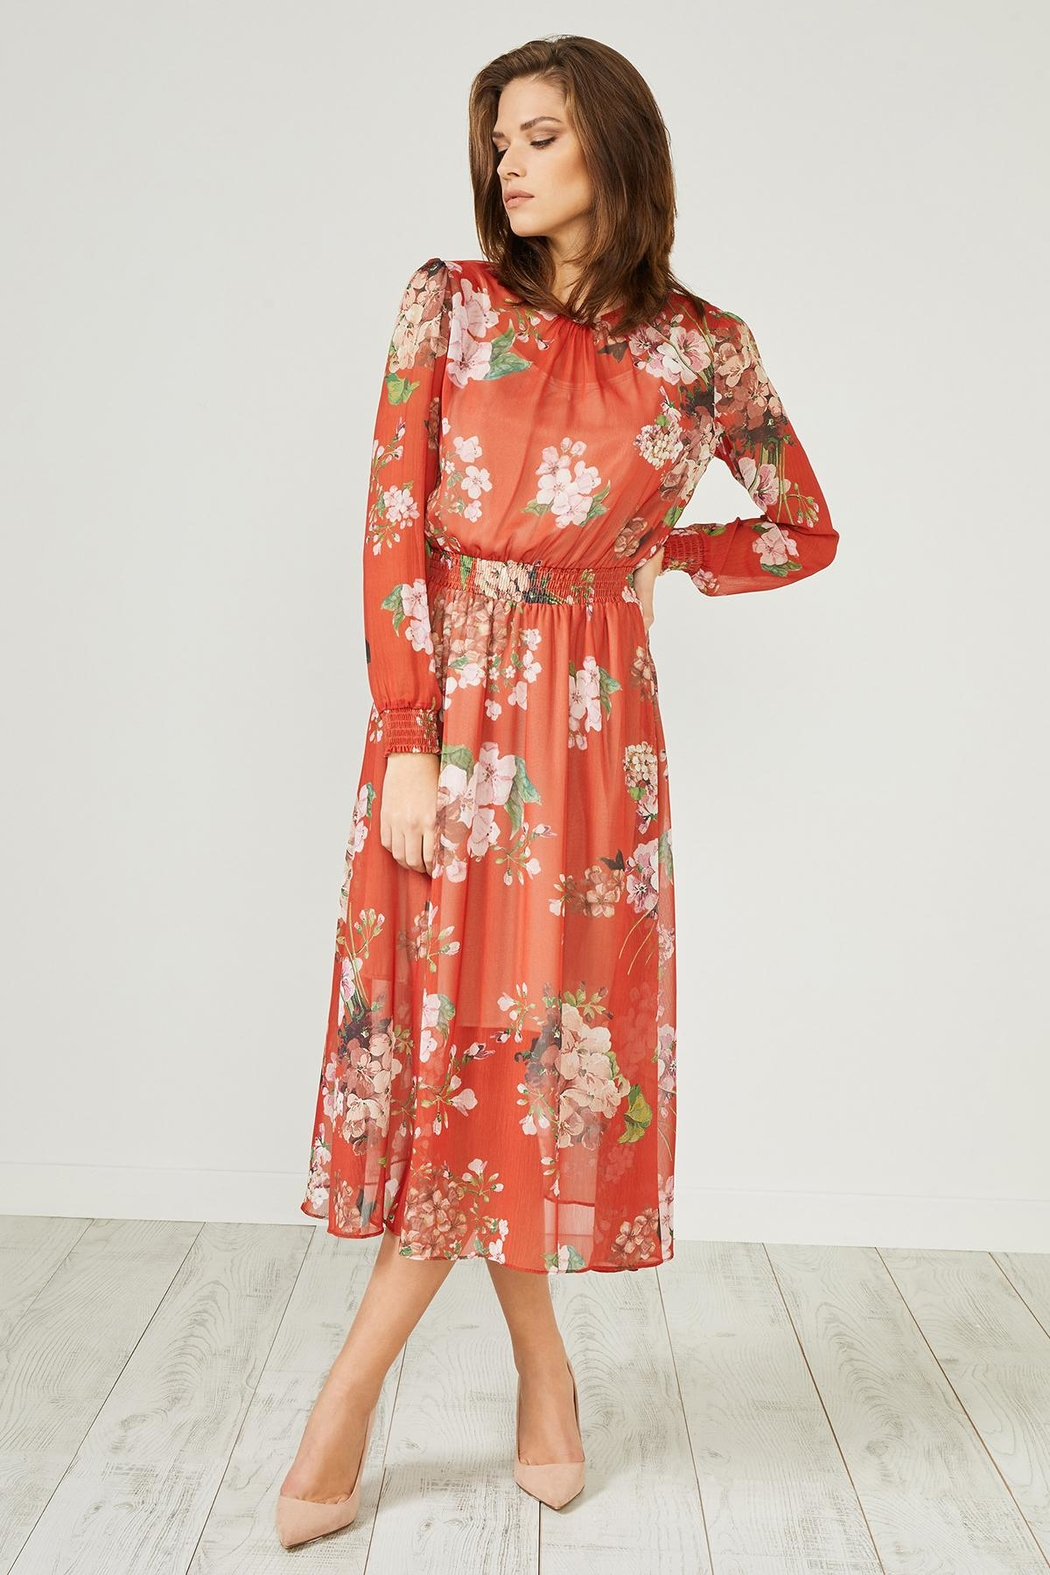 Urban Touch Red Floral Dress - Front Full Image